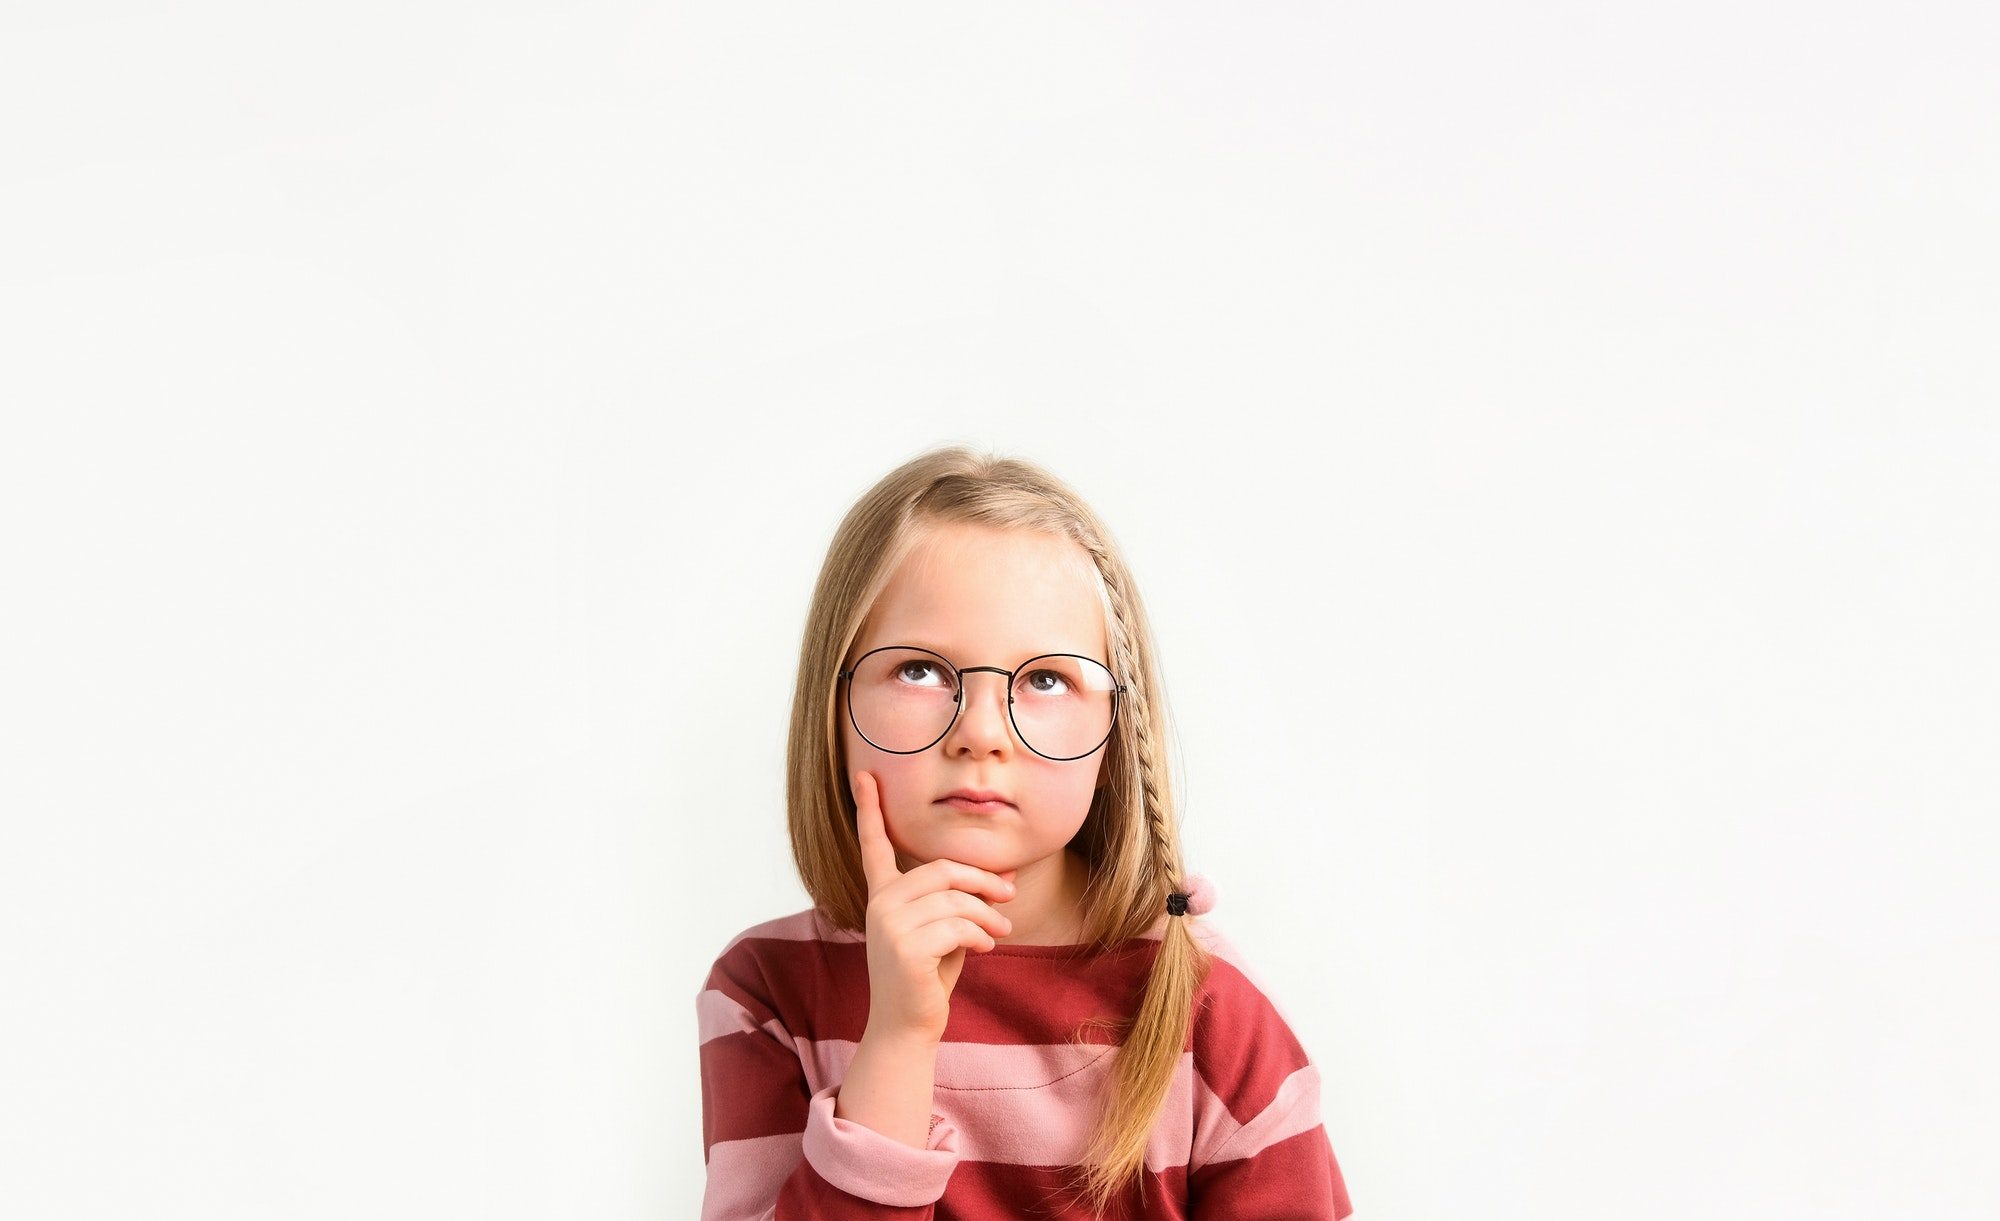 Little girl child thinking. Ponder and make a decision. Pensive and puzzled.